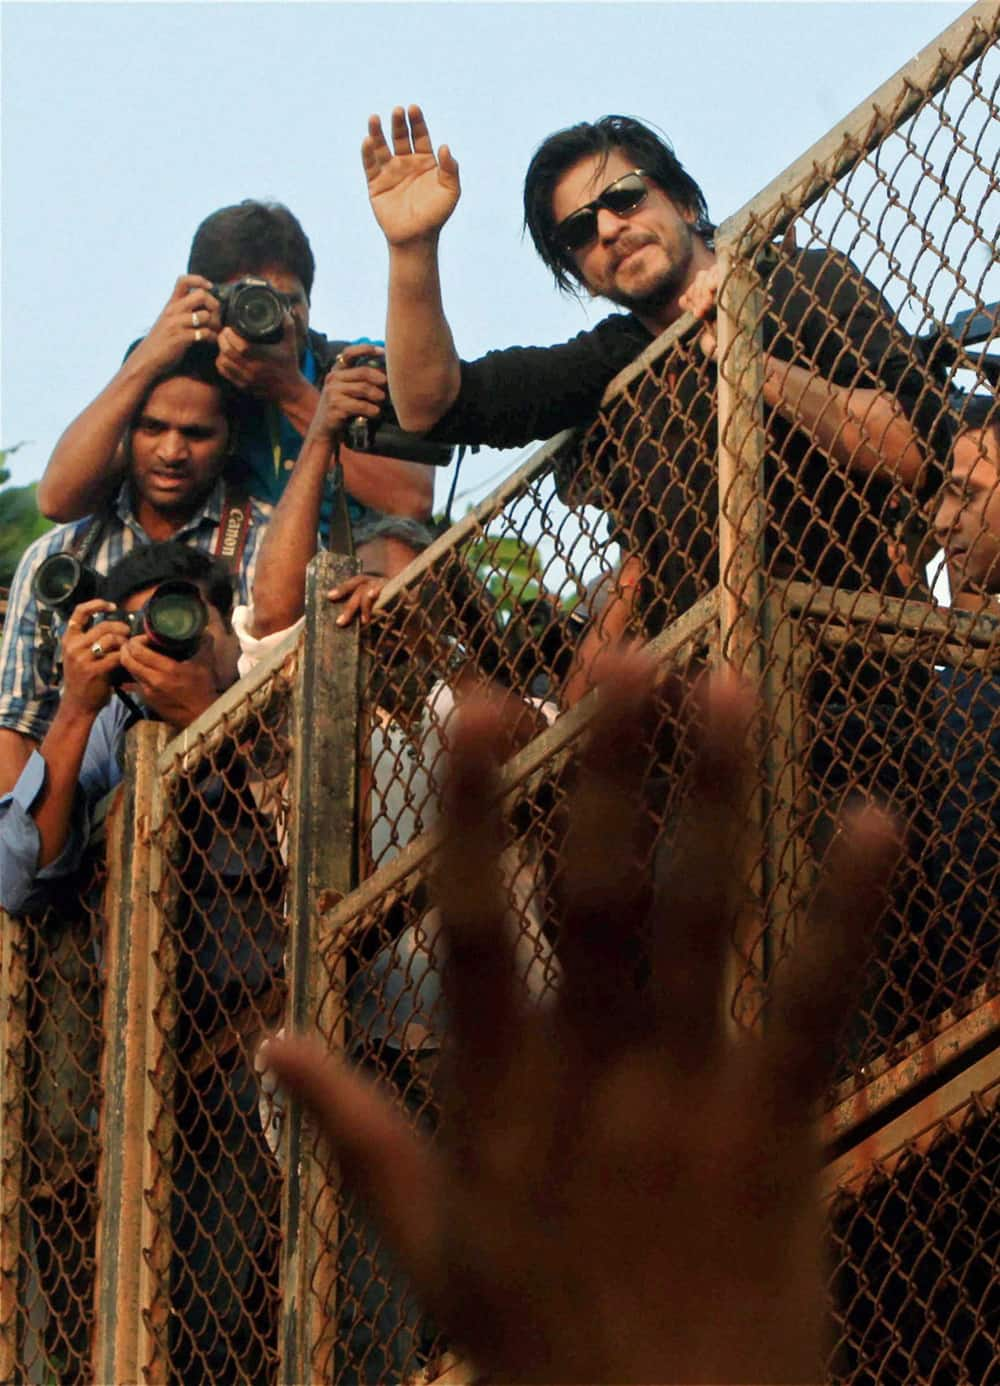 Shahrukh Khan waves to his fans on his birthday in Mumbai.